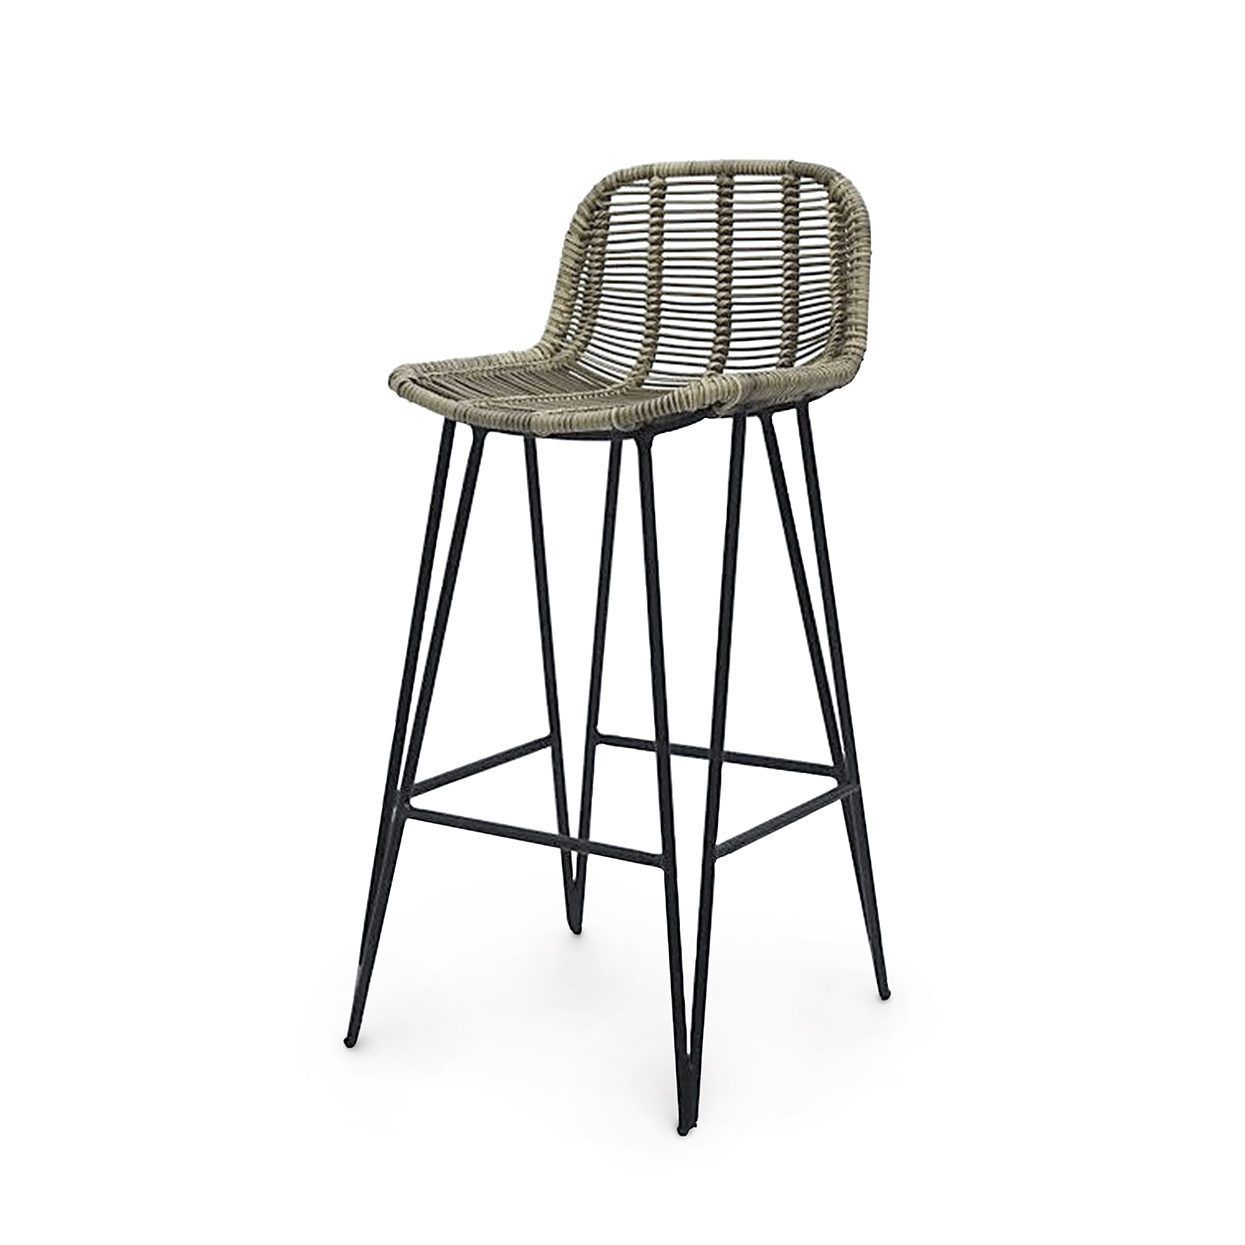 Hermosa Outdoor 30 Barstool Grey In 2021 Luxe Furniture Bar Stools Black Bar Stools